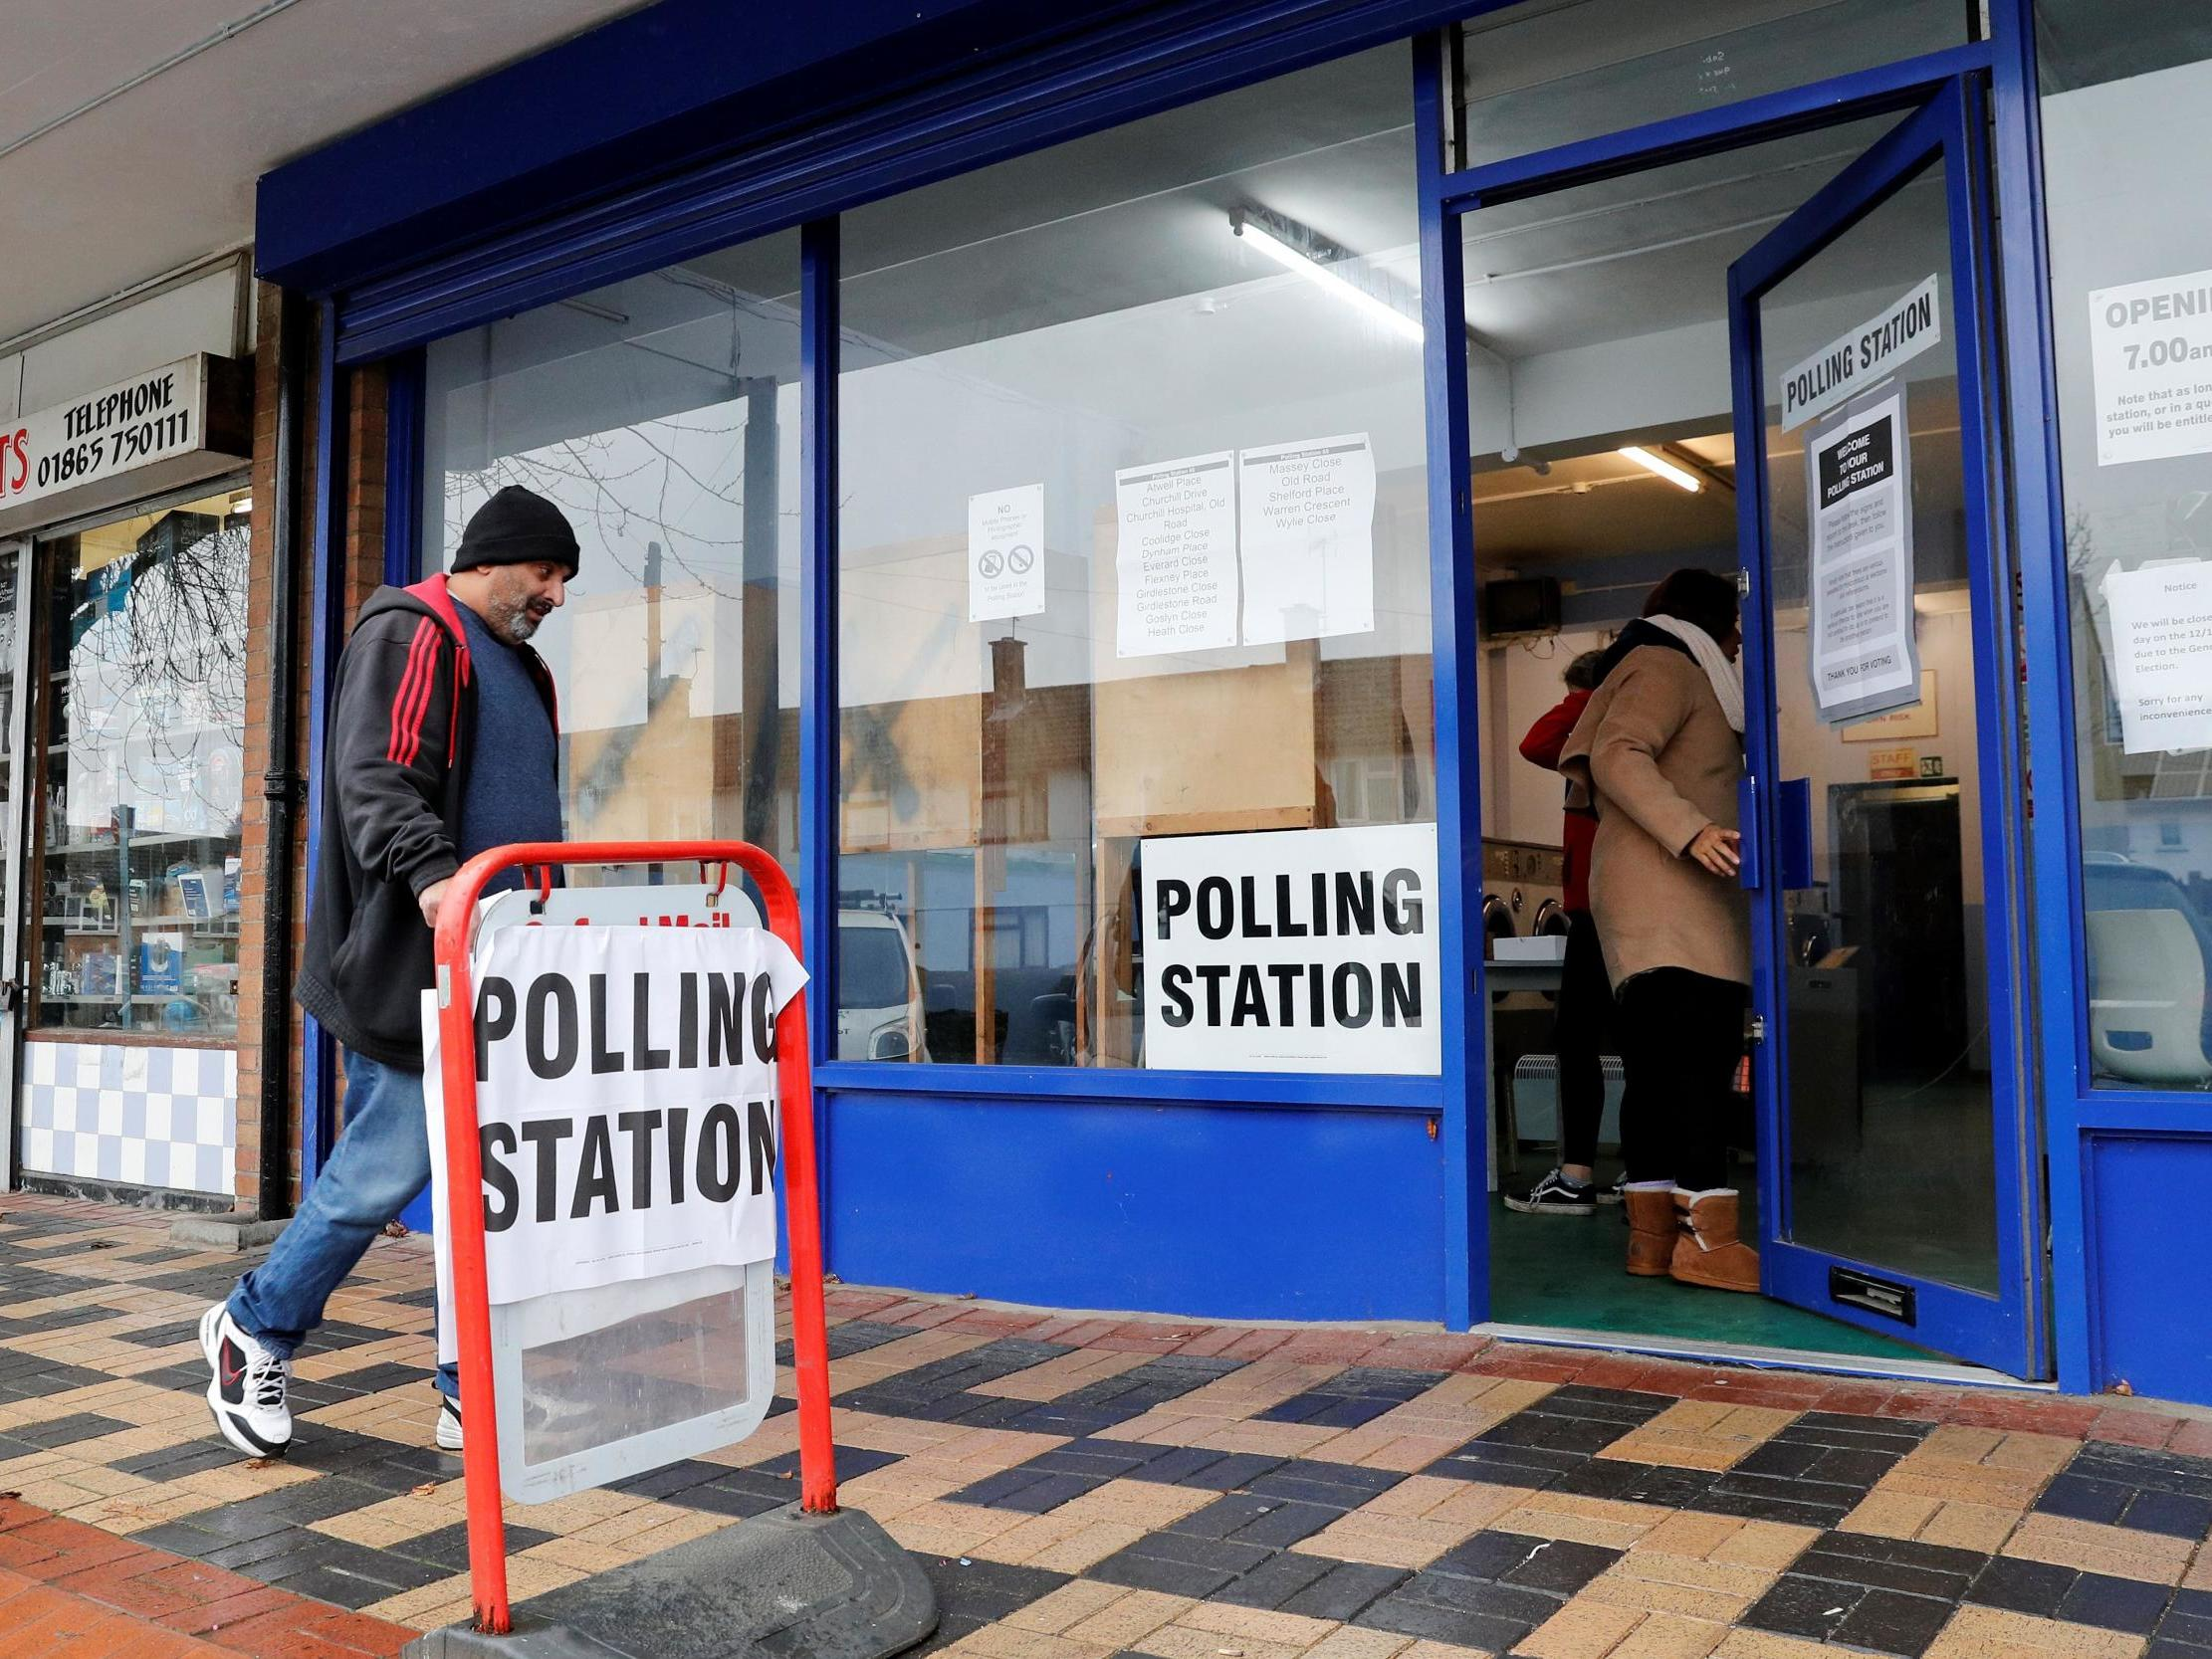 Millions of voters were systematically ignored in this election – we desperately need proportional representation